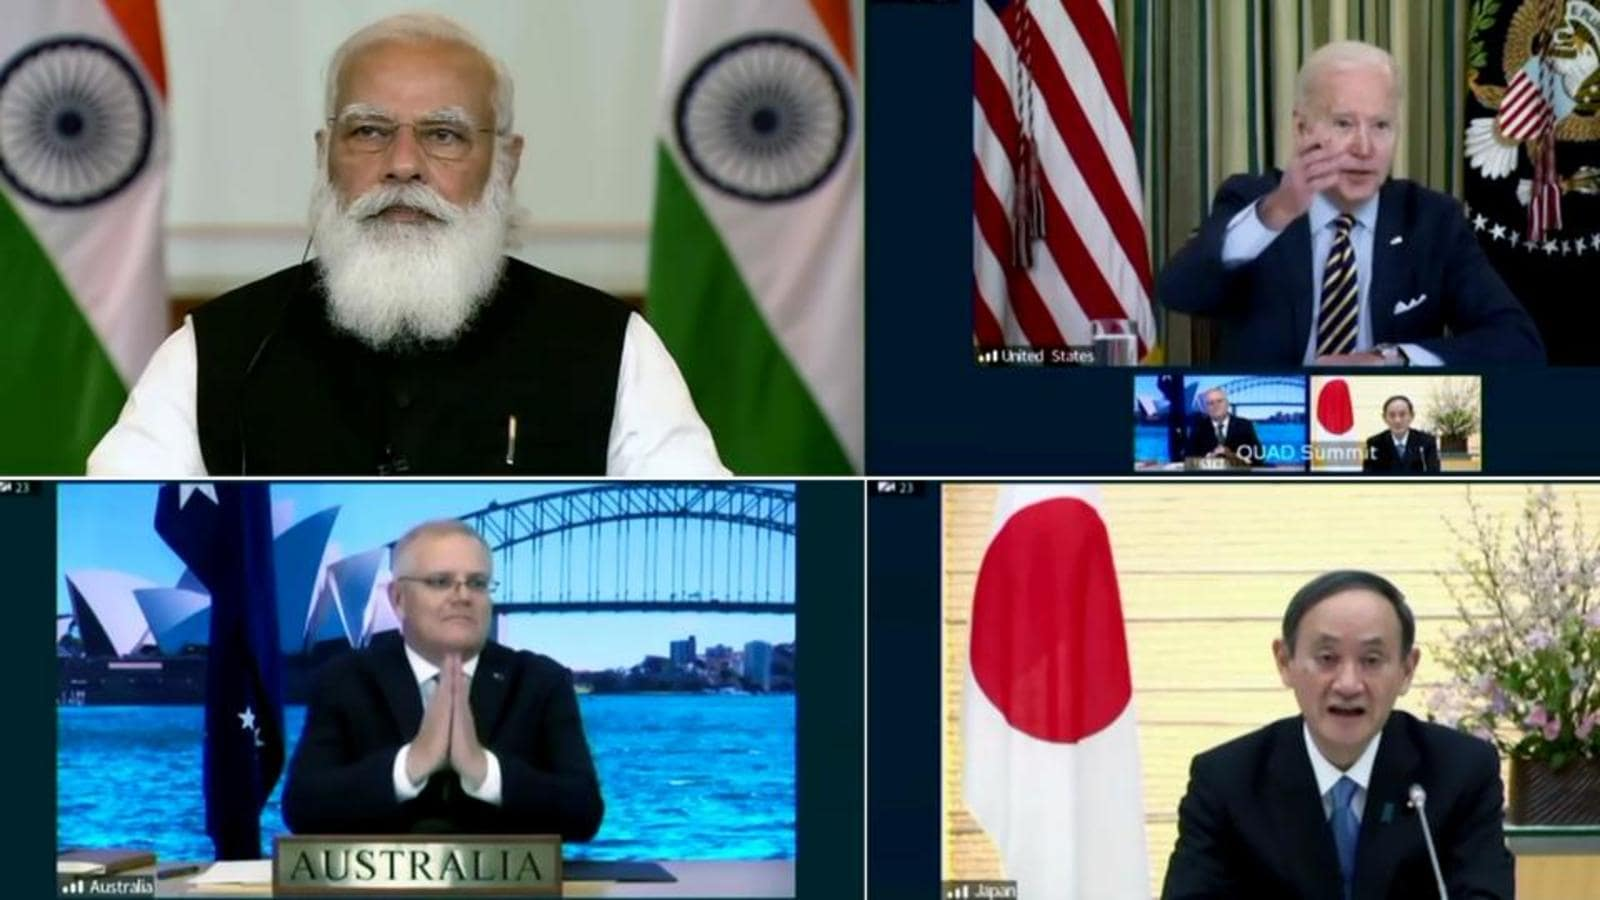 Seeing India in trouble, France, America, Australia, the UAE and Japan lend a helping hand